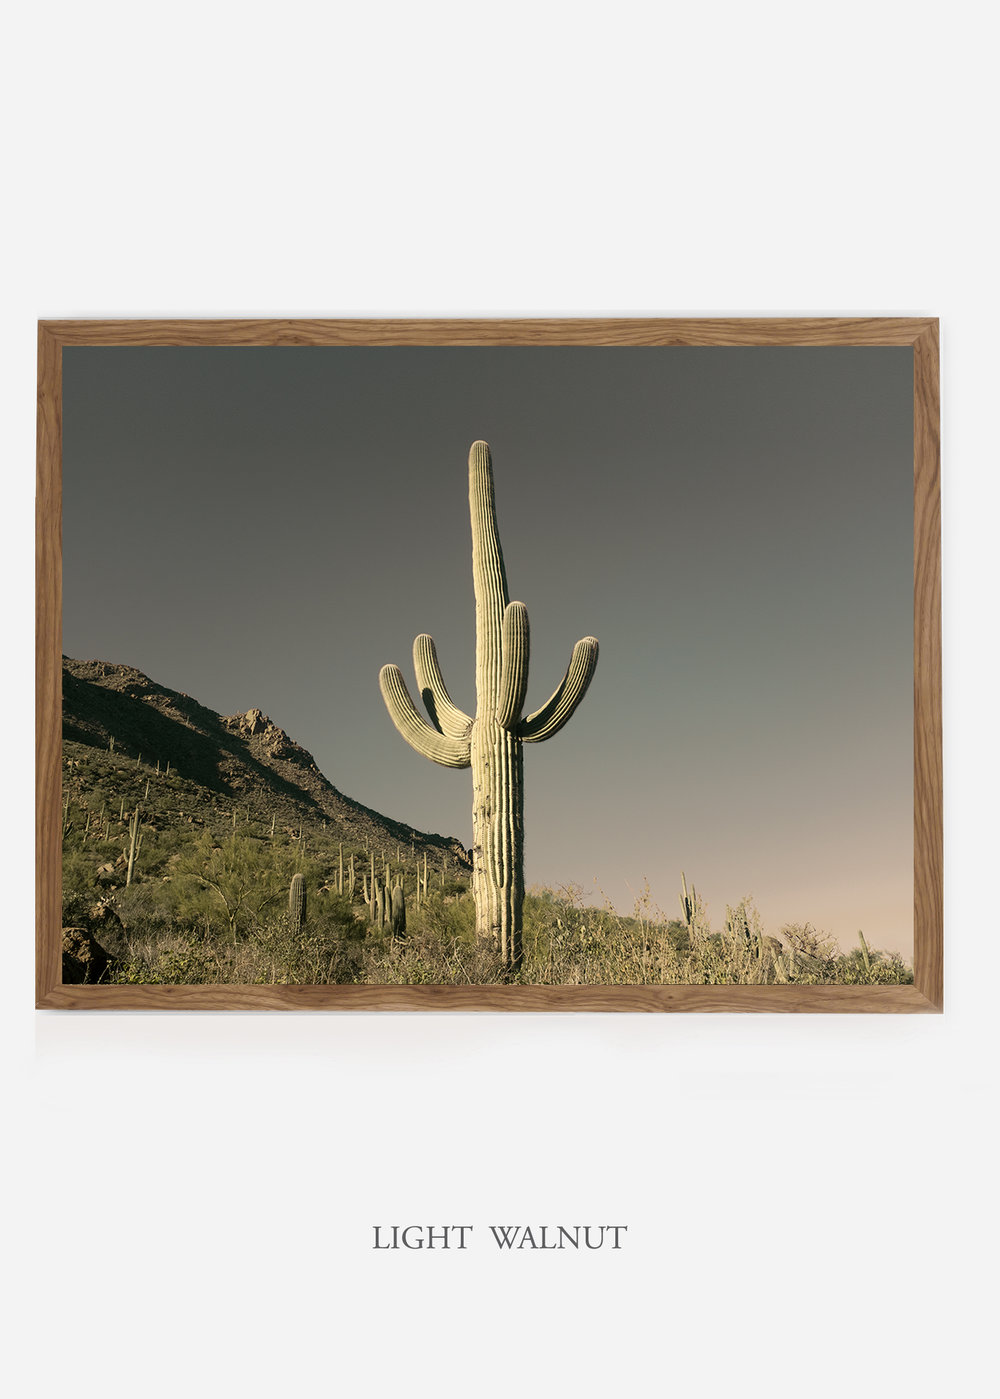 nomat_lightwalnutframe-saguaroNo.19-wildercalifornia-art-wallart-cactusprint-homedecor-prints-arizona-botanical-artwork-interiordesign.jpg